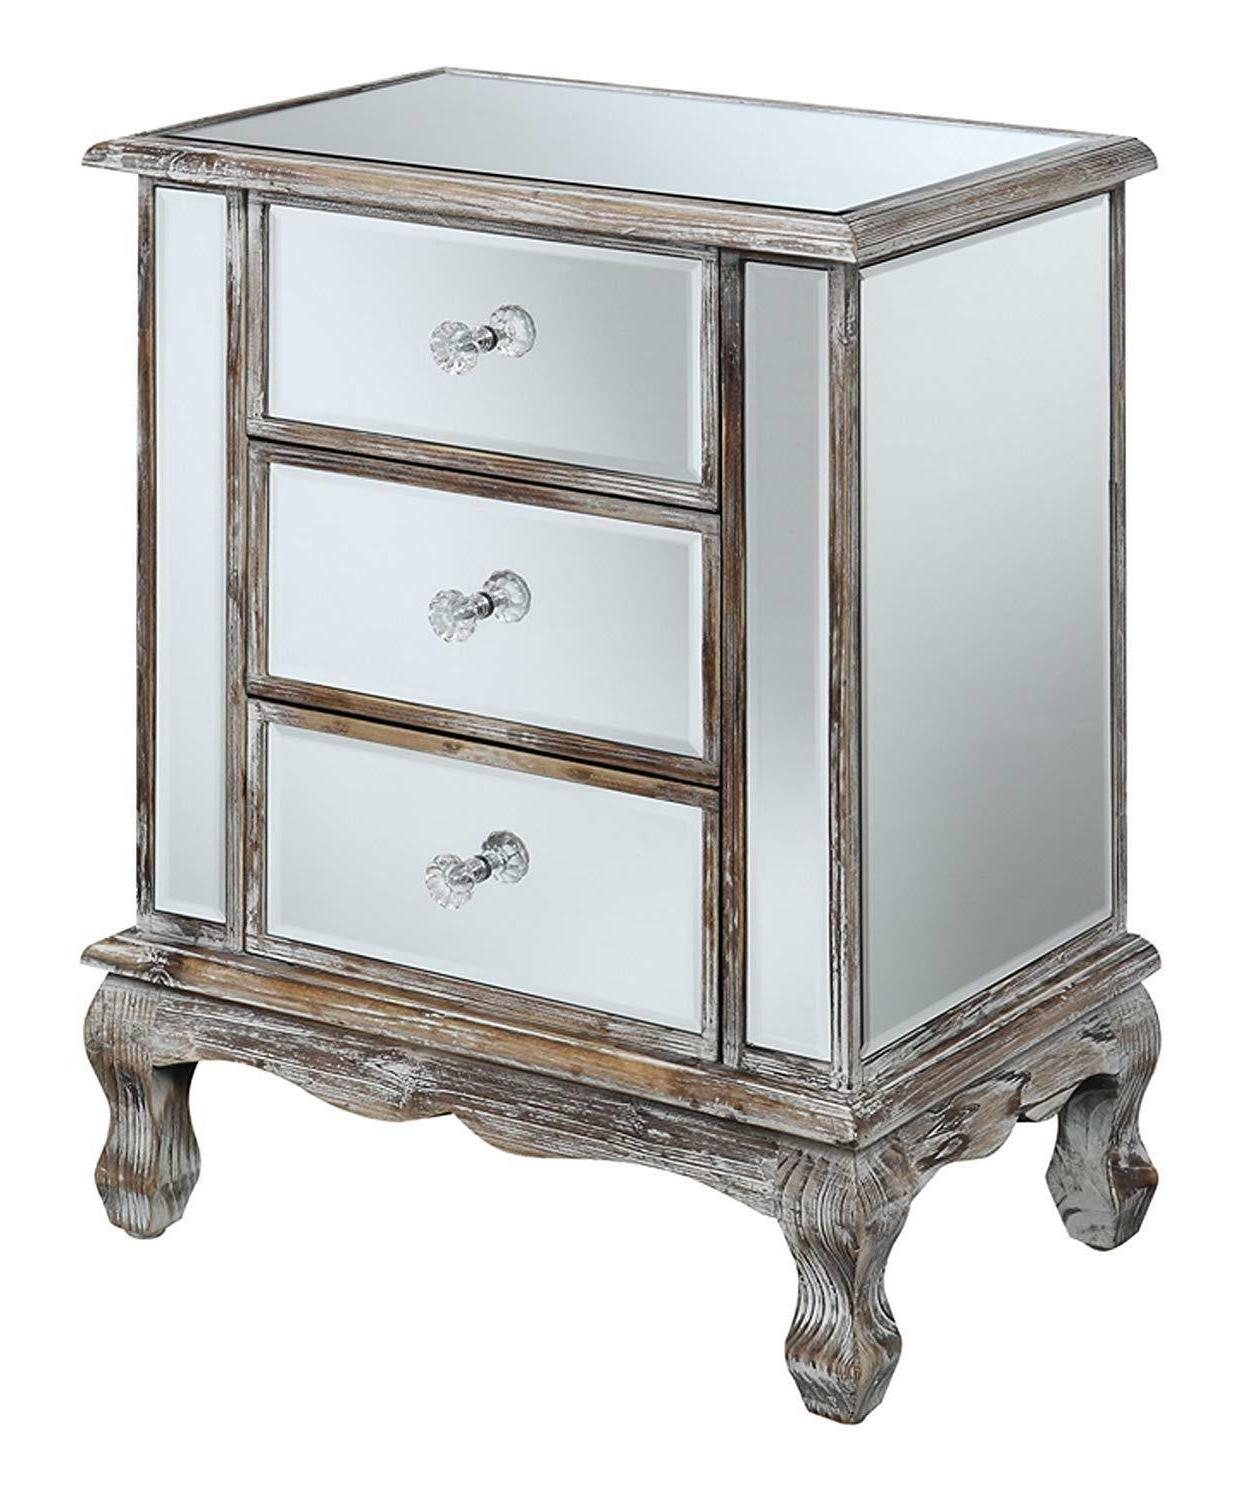 Convenience Collection Table,